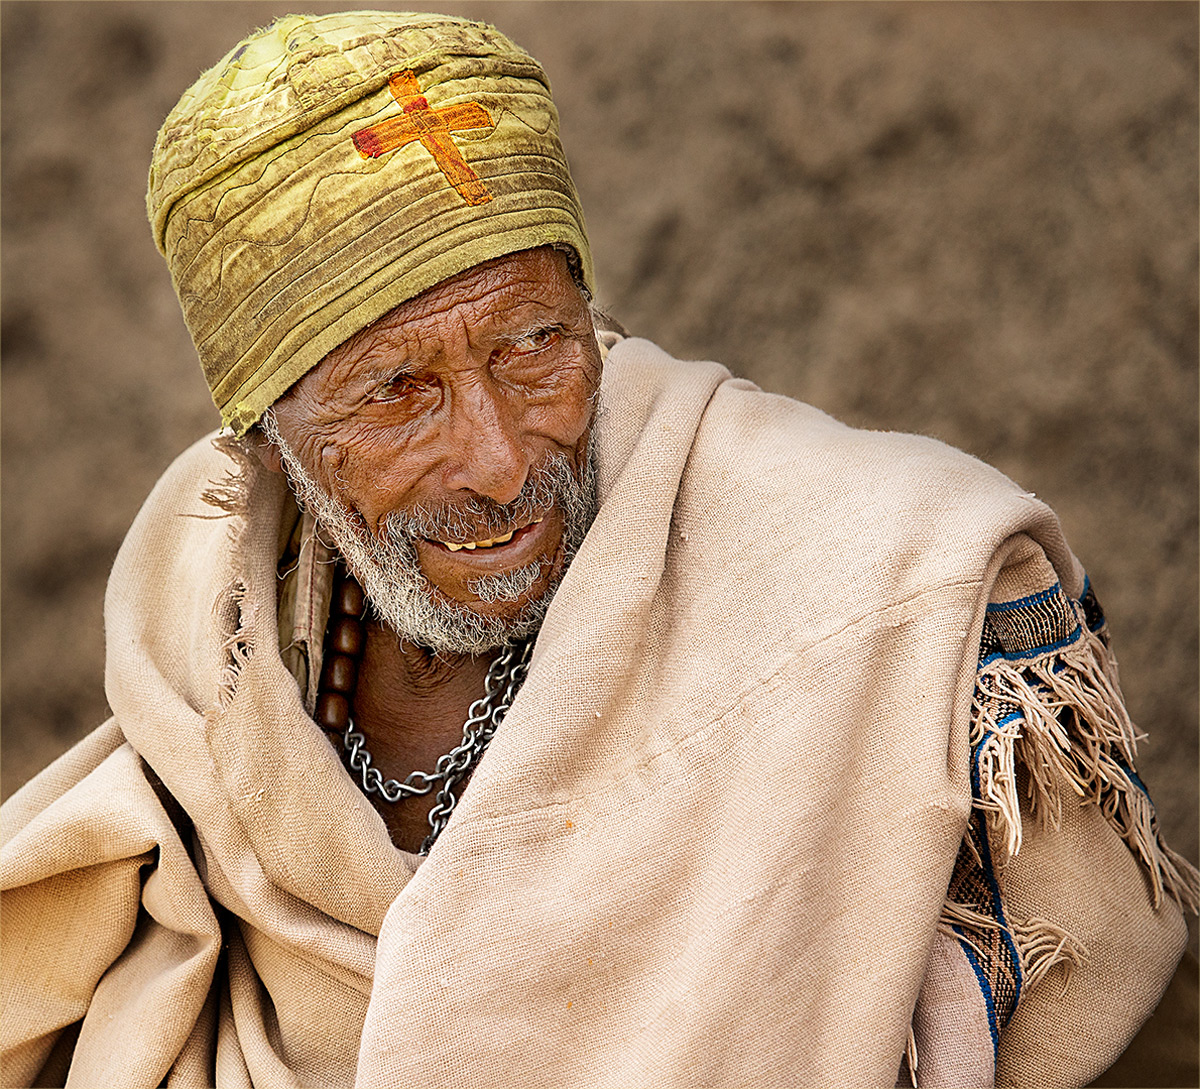 An old man in his church clothes on his way to church, Lalibela, Ethiopia © Hesté de Beer